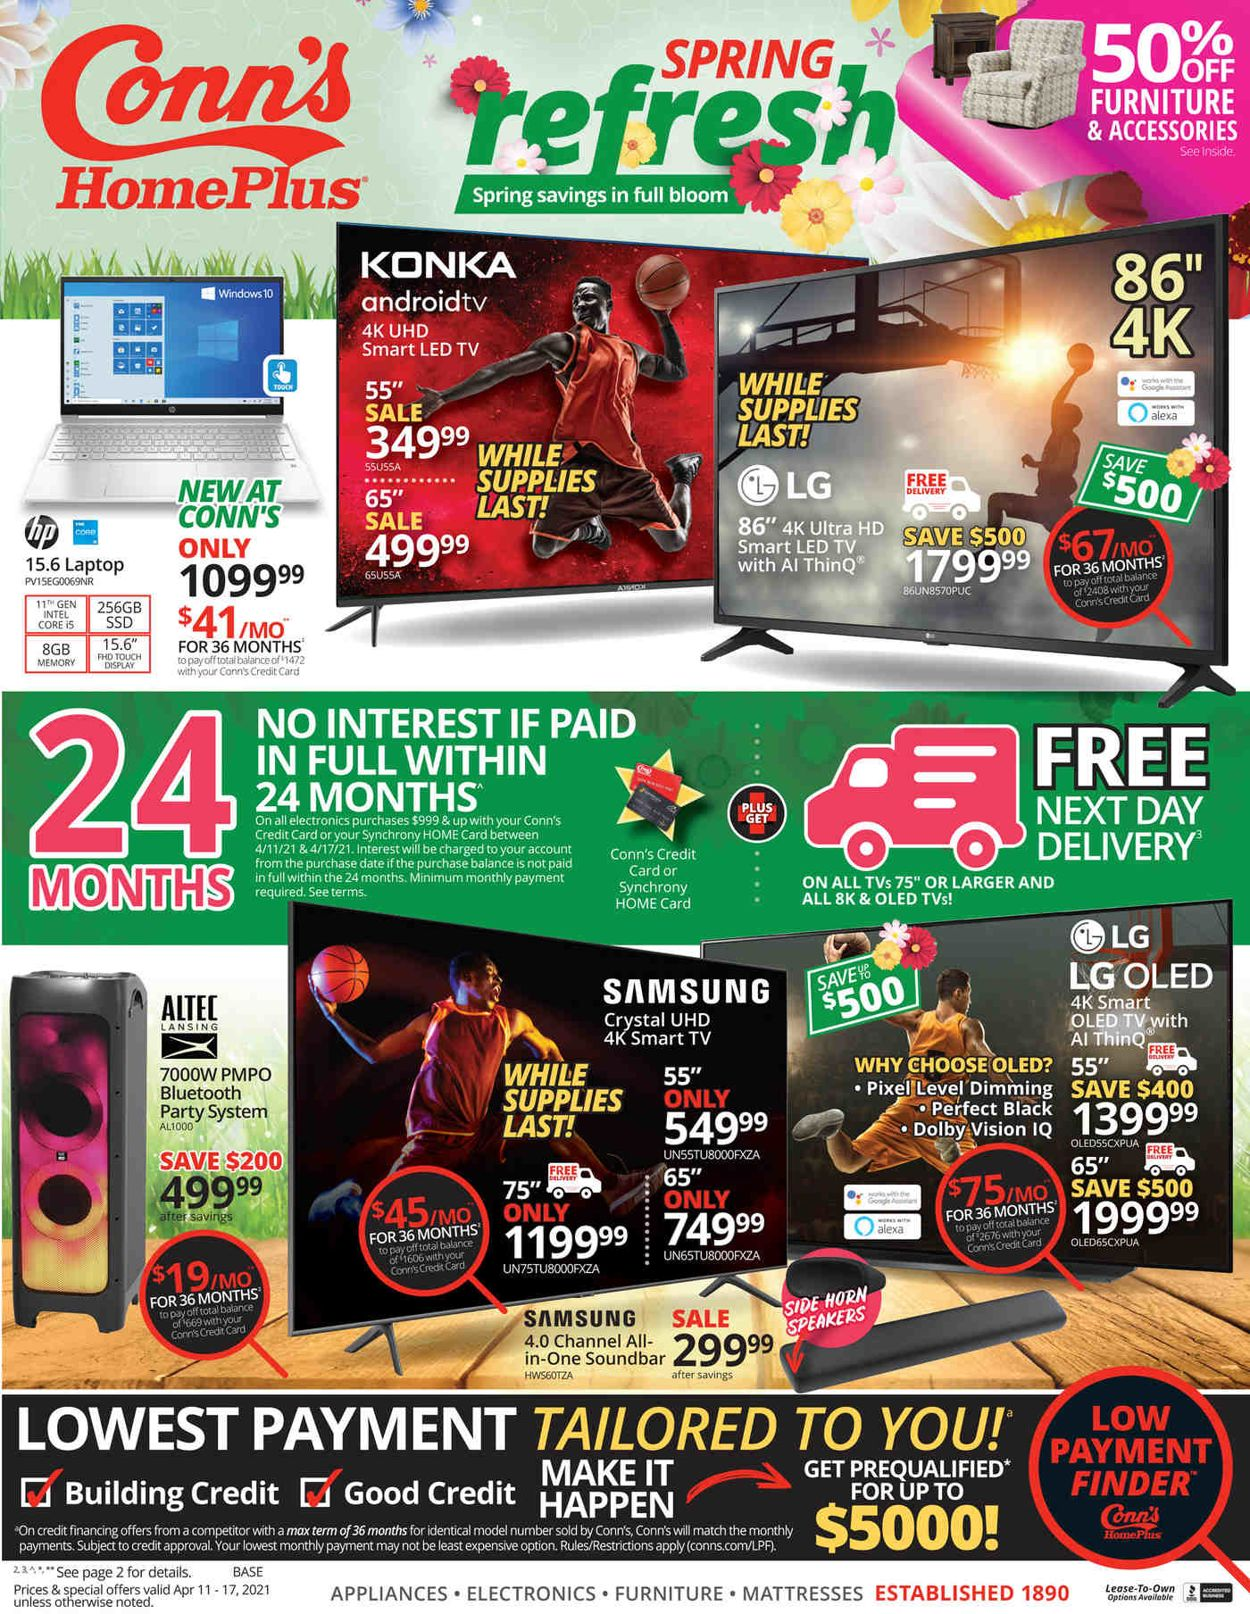 Conn's Home Plus Weekly Ad Circular - valid 04/11-04/17/2021